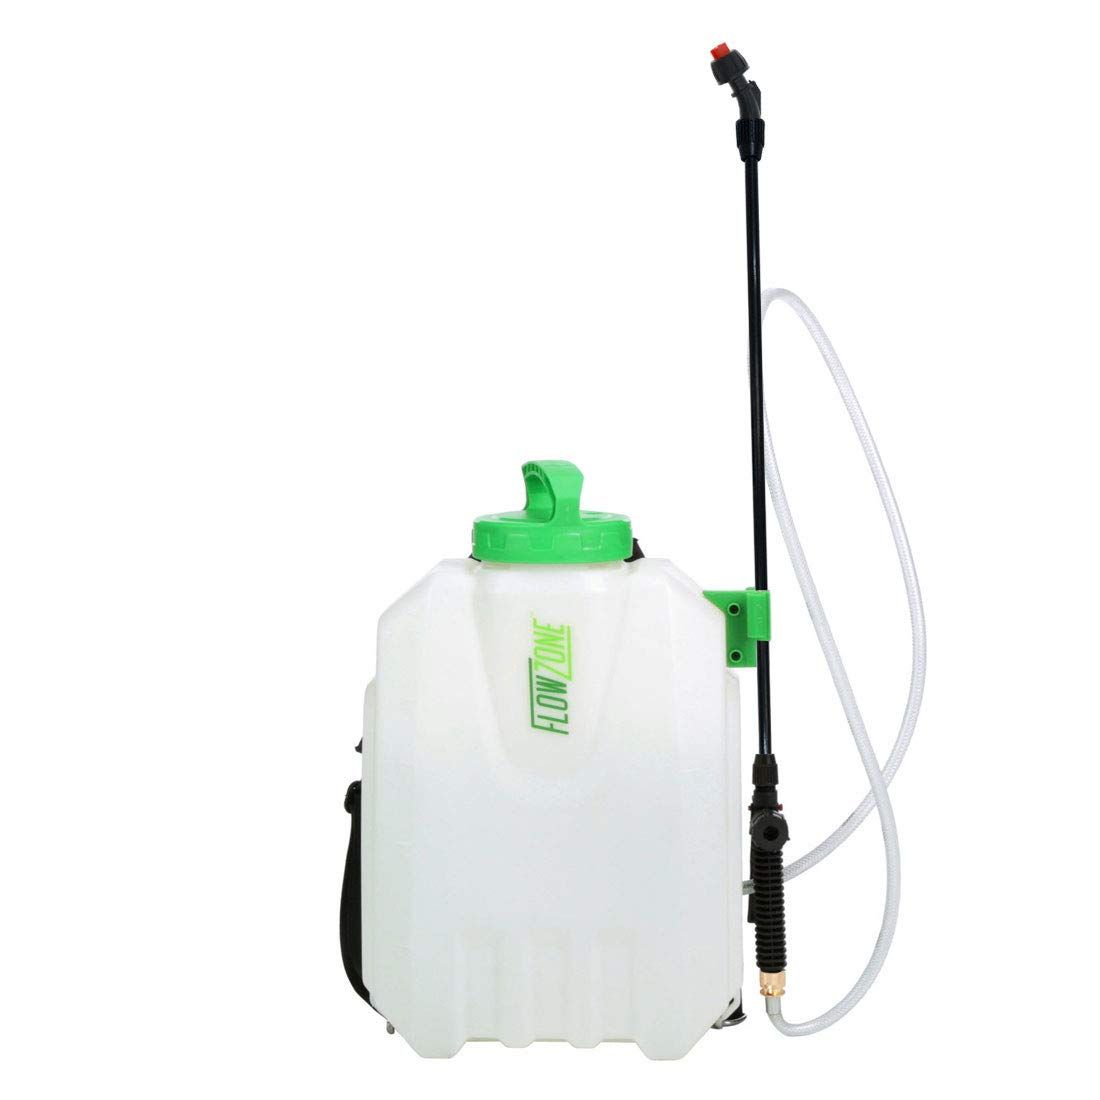 Flowzone Storm 2 5gal Multiuse Continuouspressure 18v Lithiumion Backpack Sprayer Want To Know More Click On The Im Sprayers Home Appliances Vacuum Cleaner